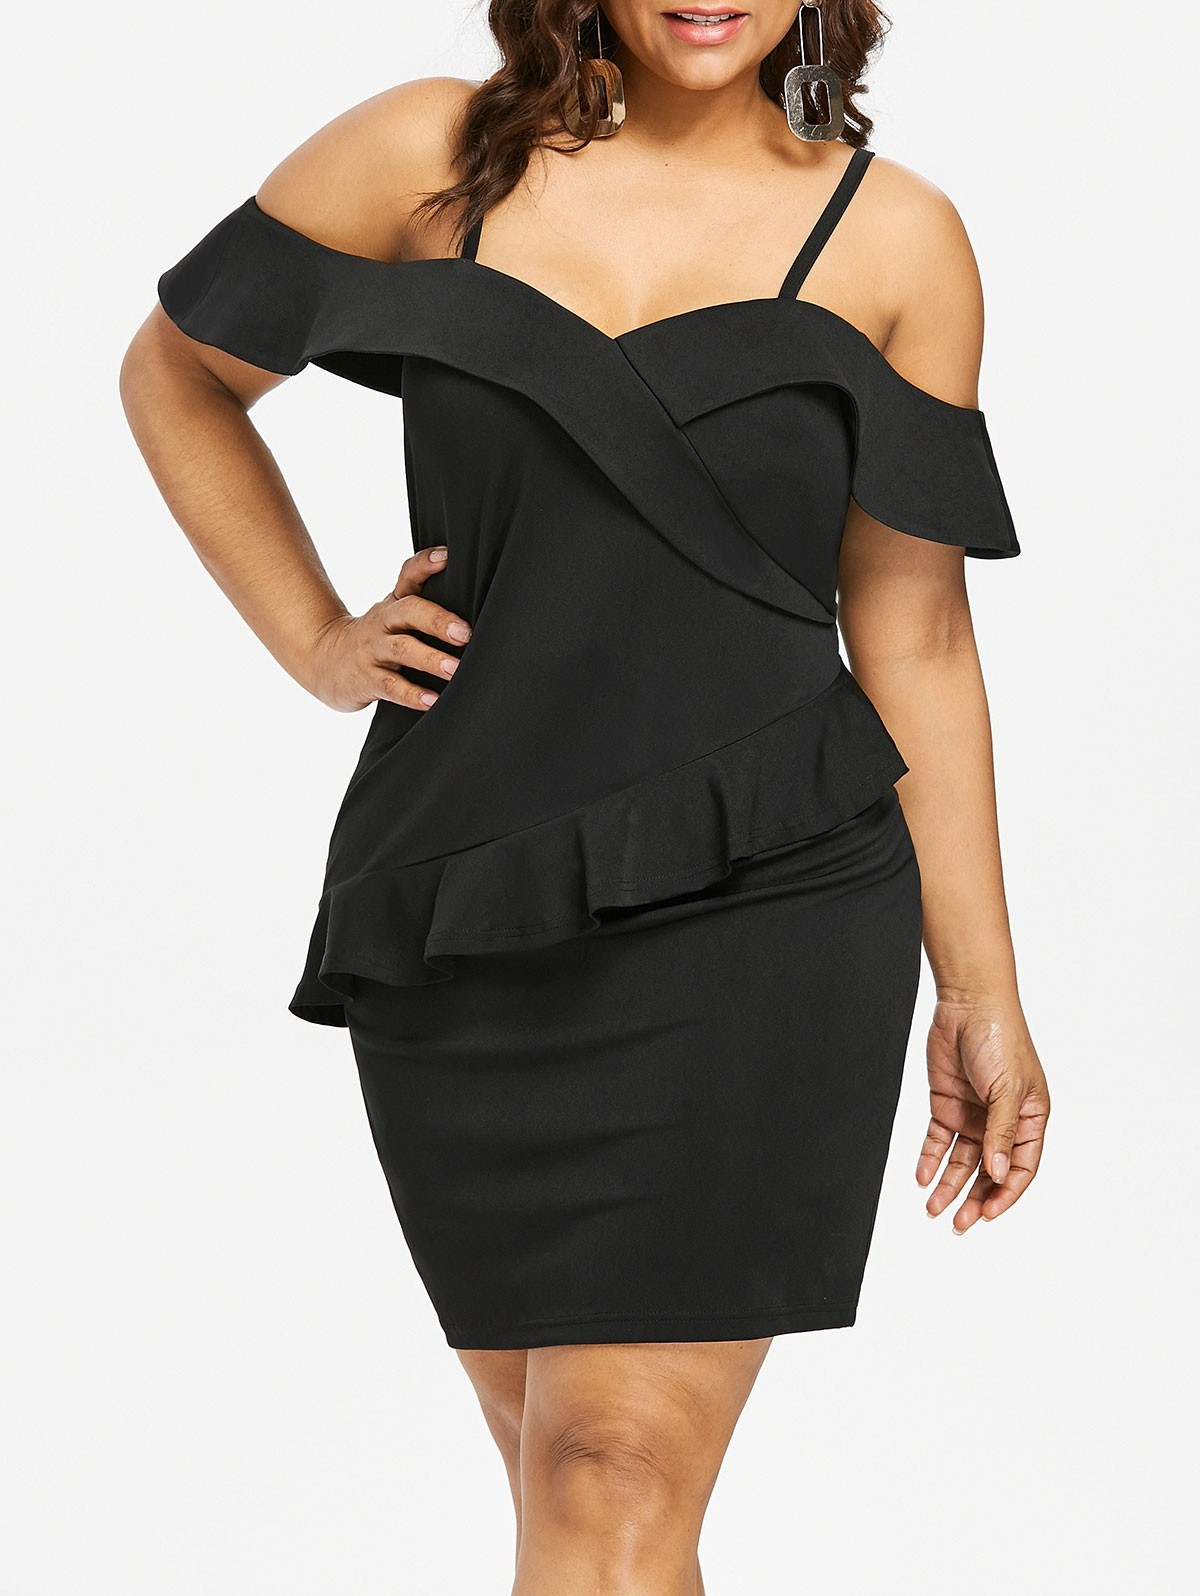 45cdc404323 Plus Size Foldover Cold Shoulder Dress BLACK 4X  Product No  7199415. Item  specifics  Seller SKU C6PENM4OF  Brand